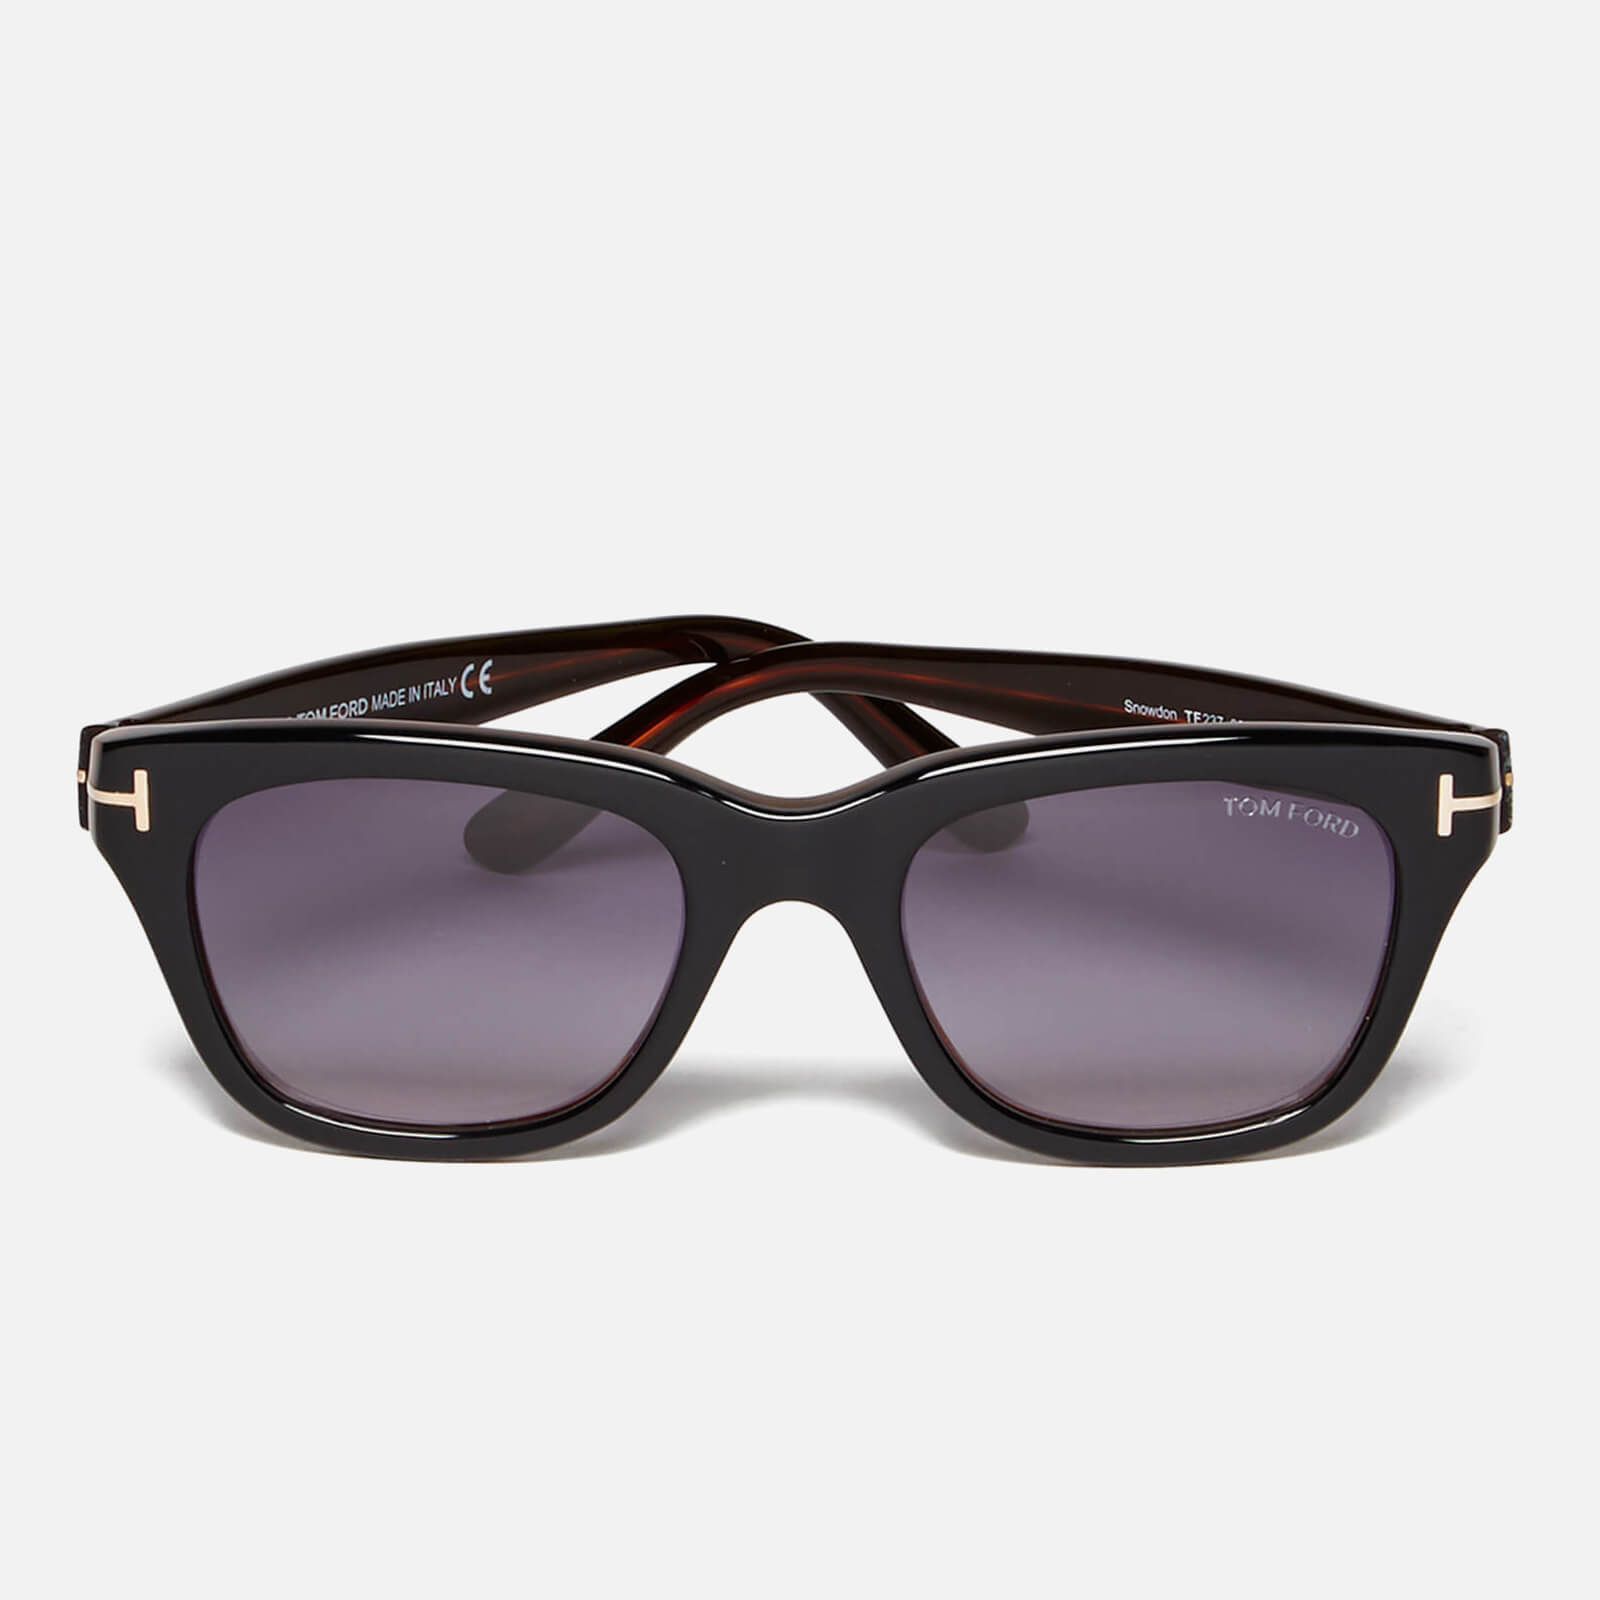 79c04d683a2 Tom Ford Snowdon Sunglasses - Black - Free UK Delivery over £50